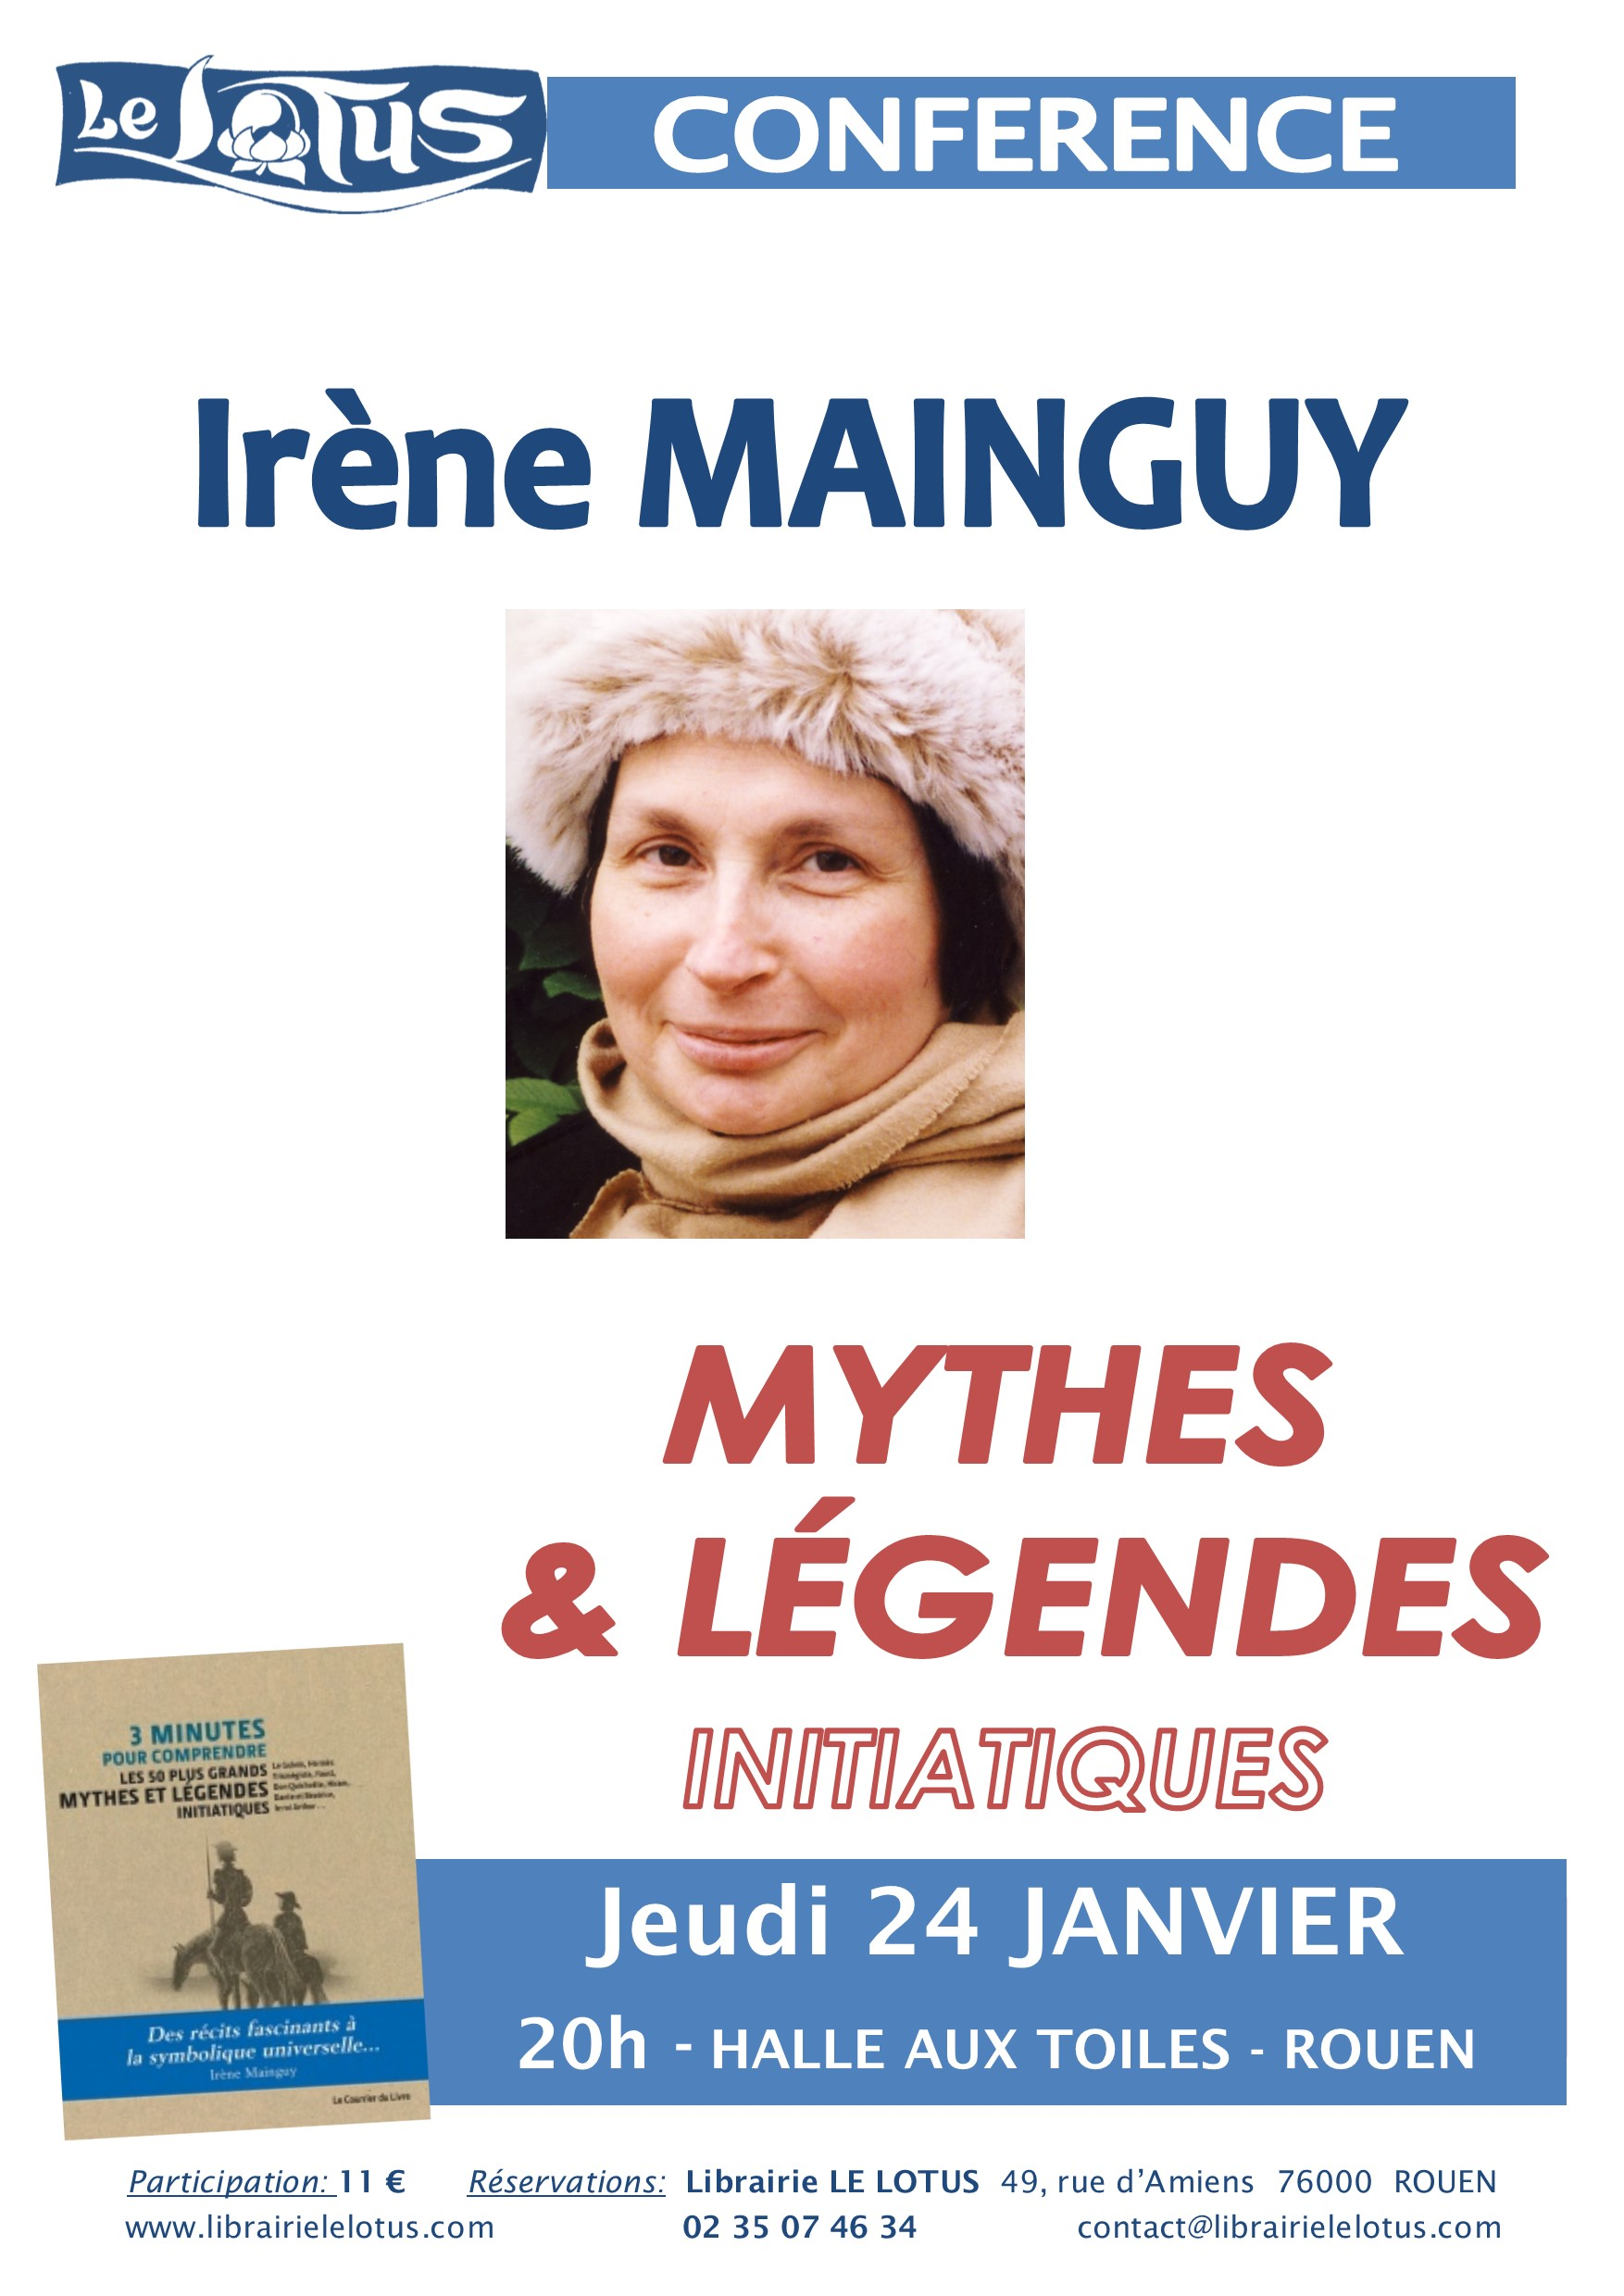 CONFERENCE - MYTHES & LEGENDES INITIATIQUES